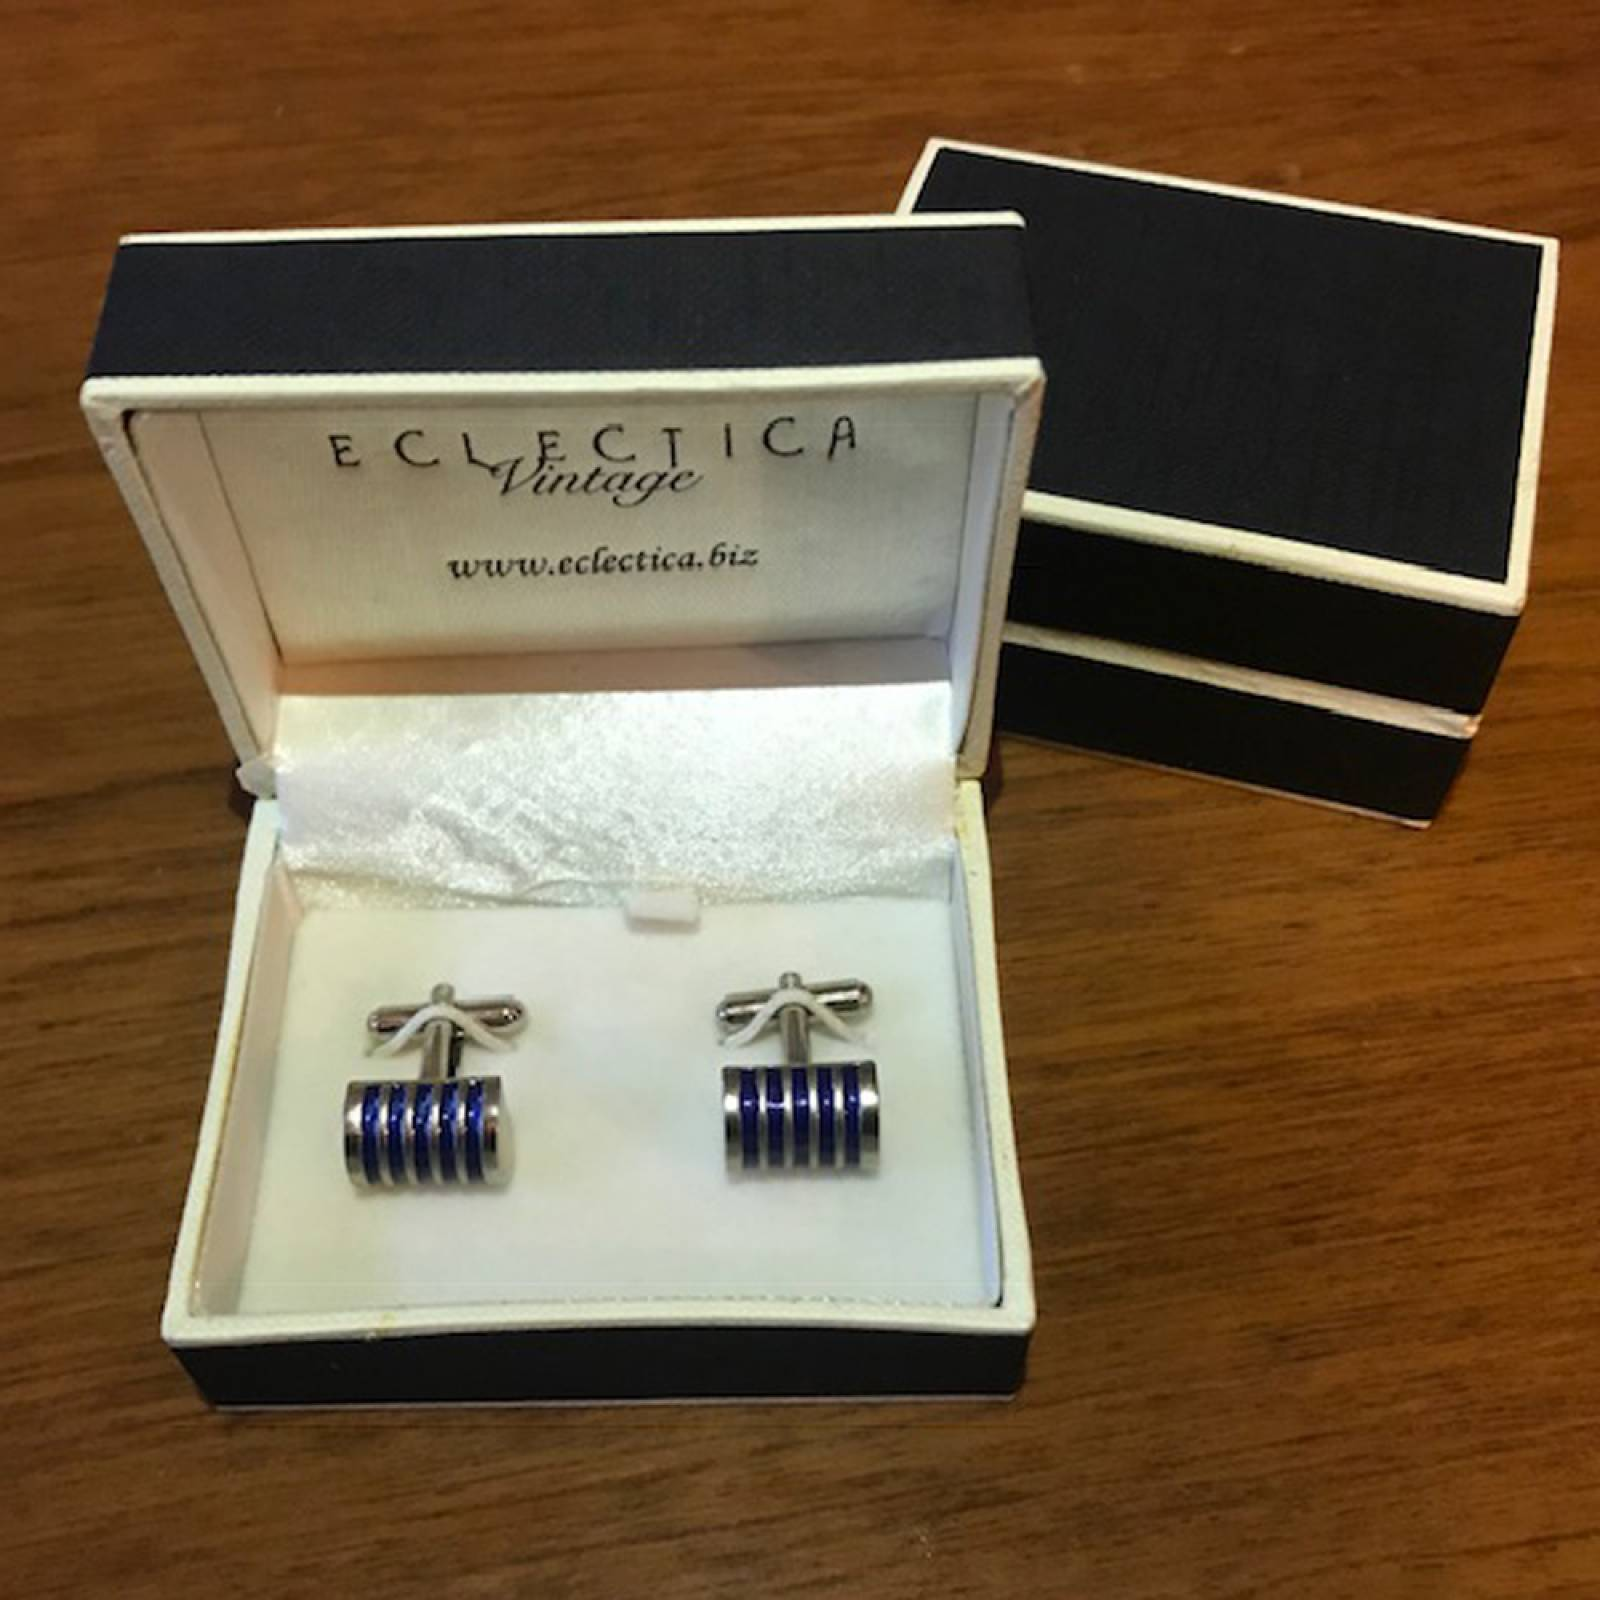 Vintage 1980s Ribbed Blue Enamel Metal Cufflinks thumbnails